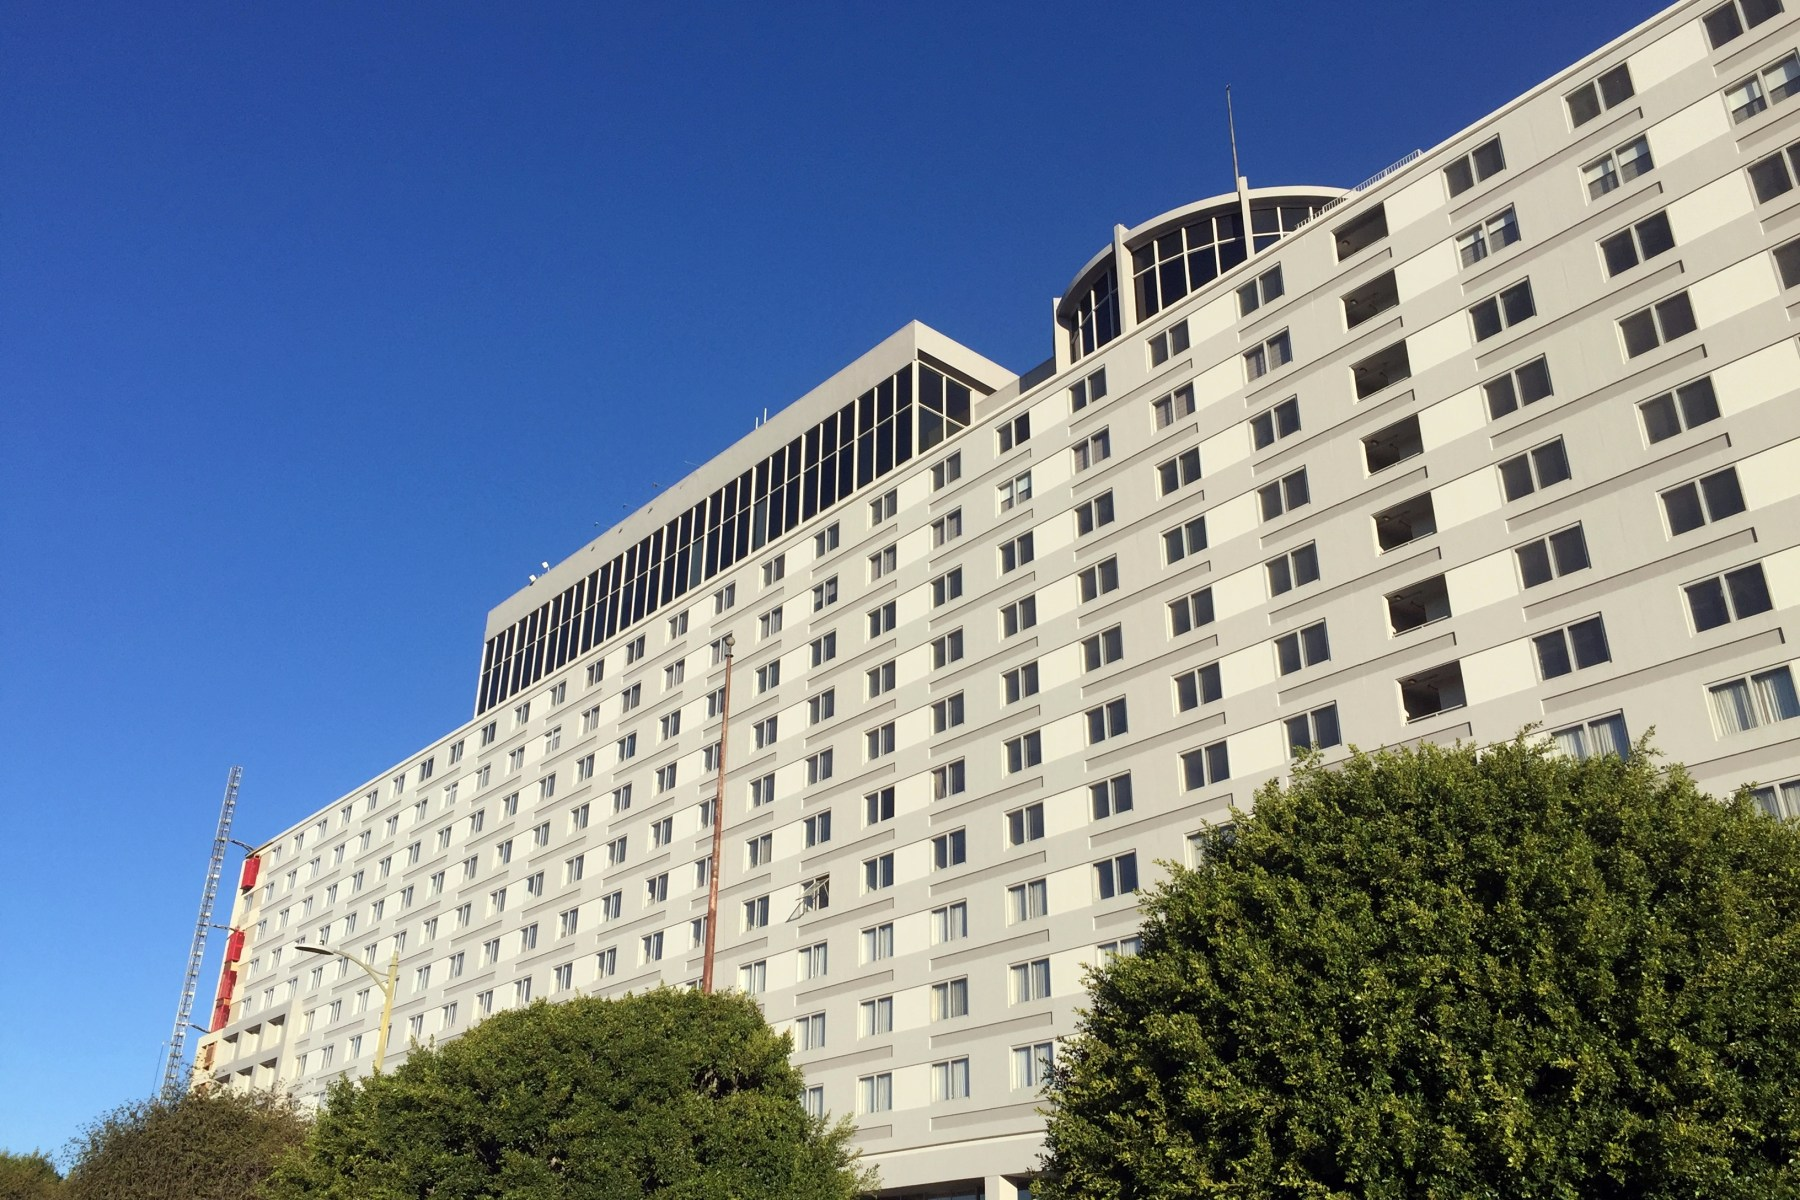 Los Angeles Hotels Coupons Online